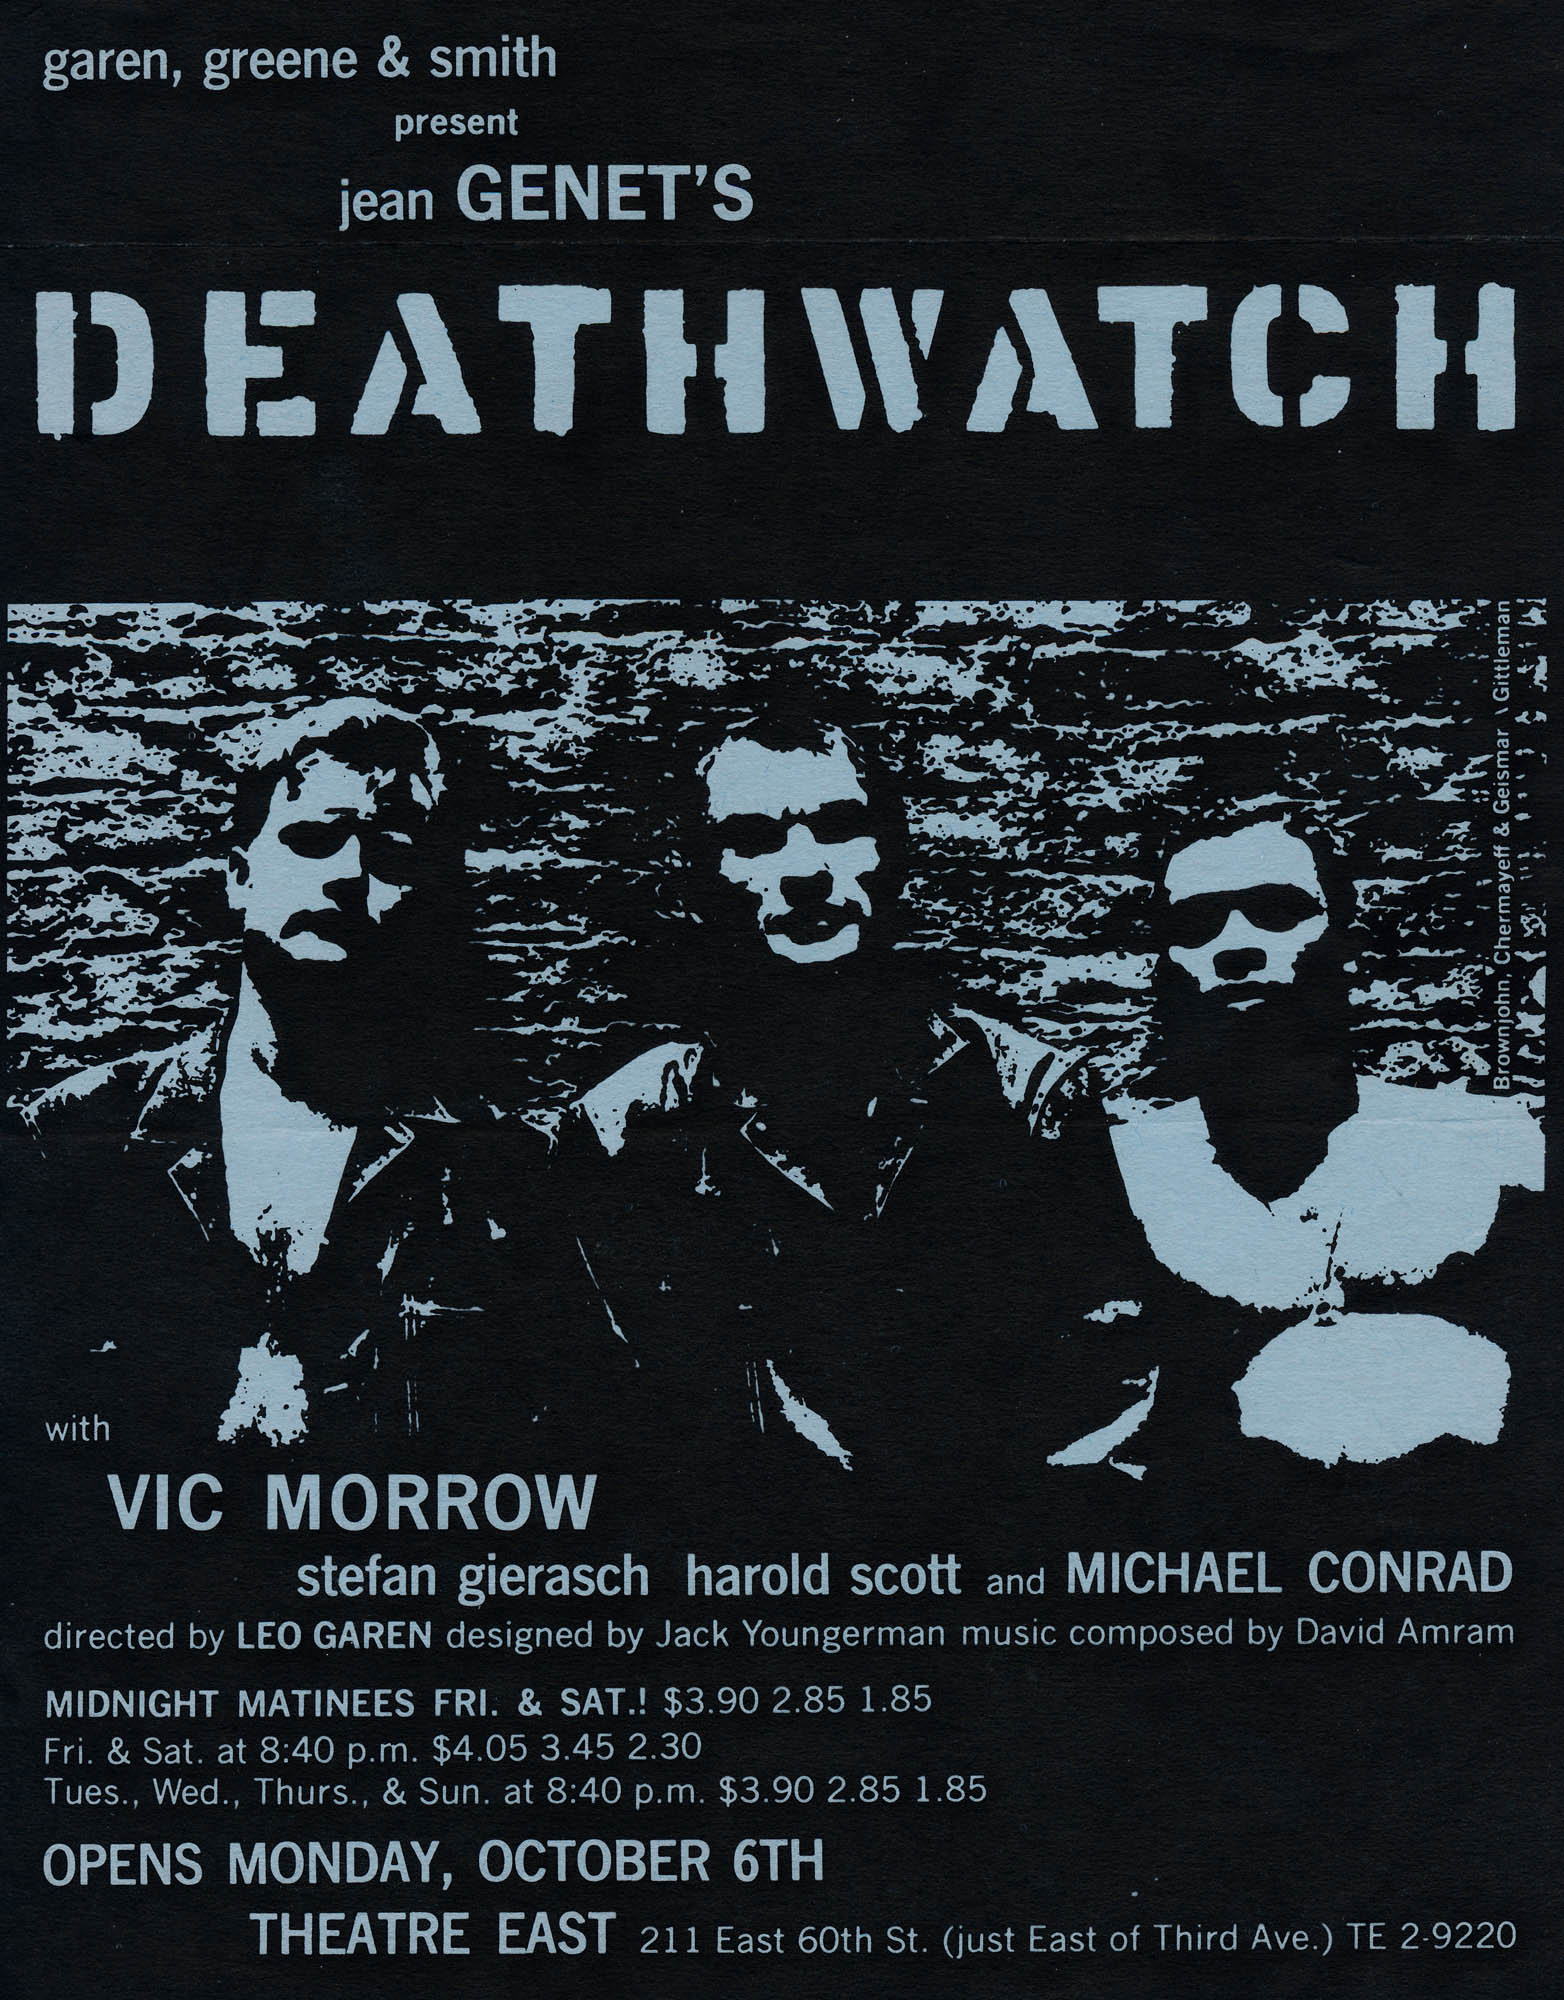 Deathwatch Play - Flyer New York 1950's